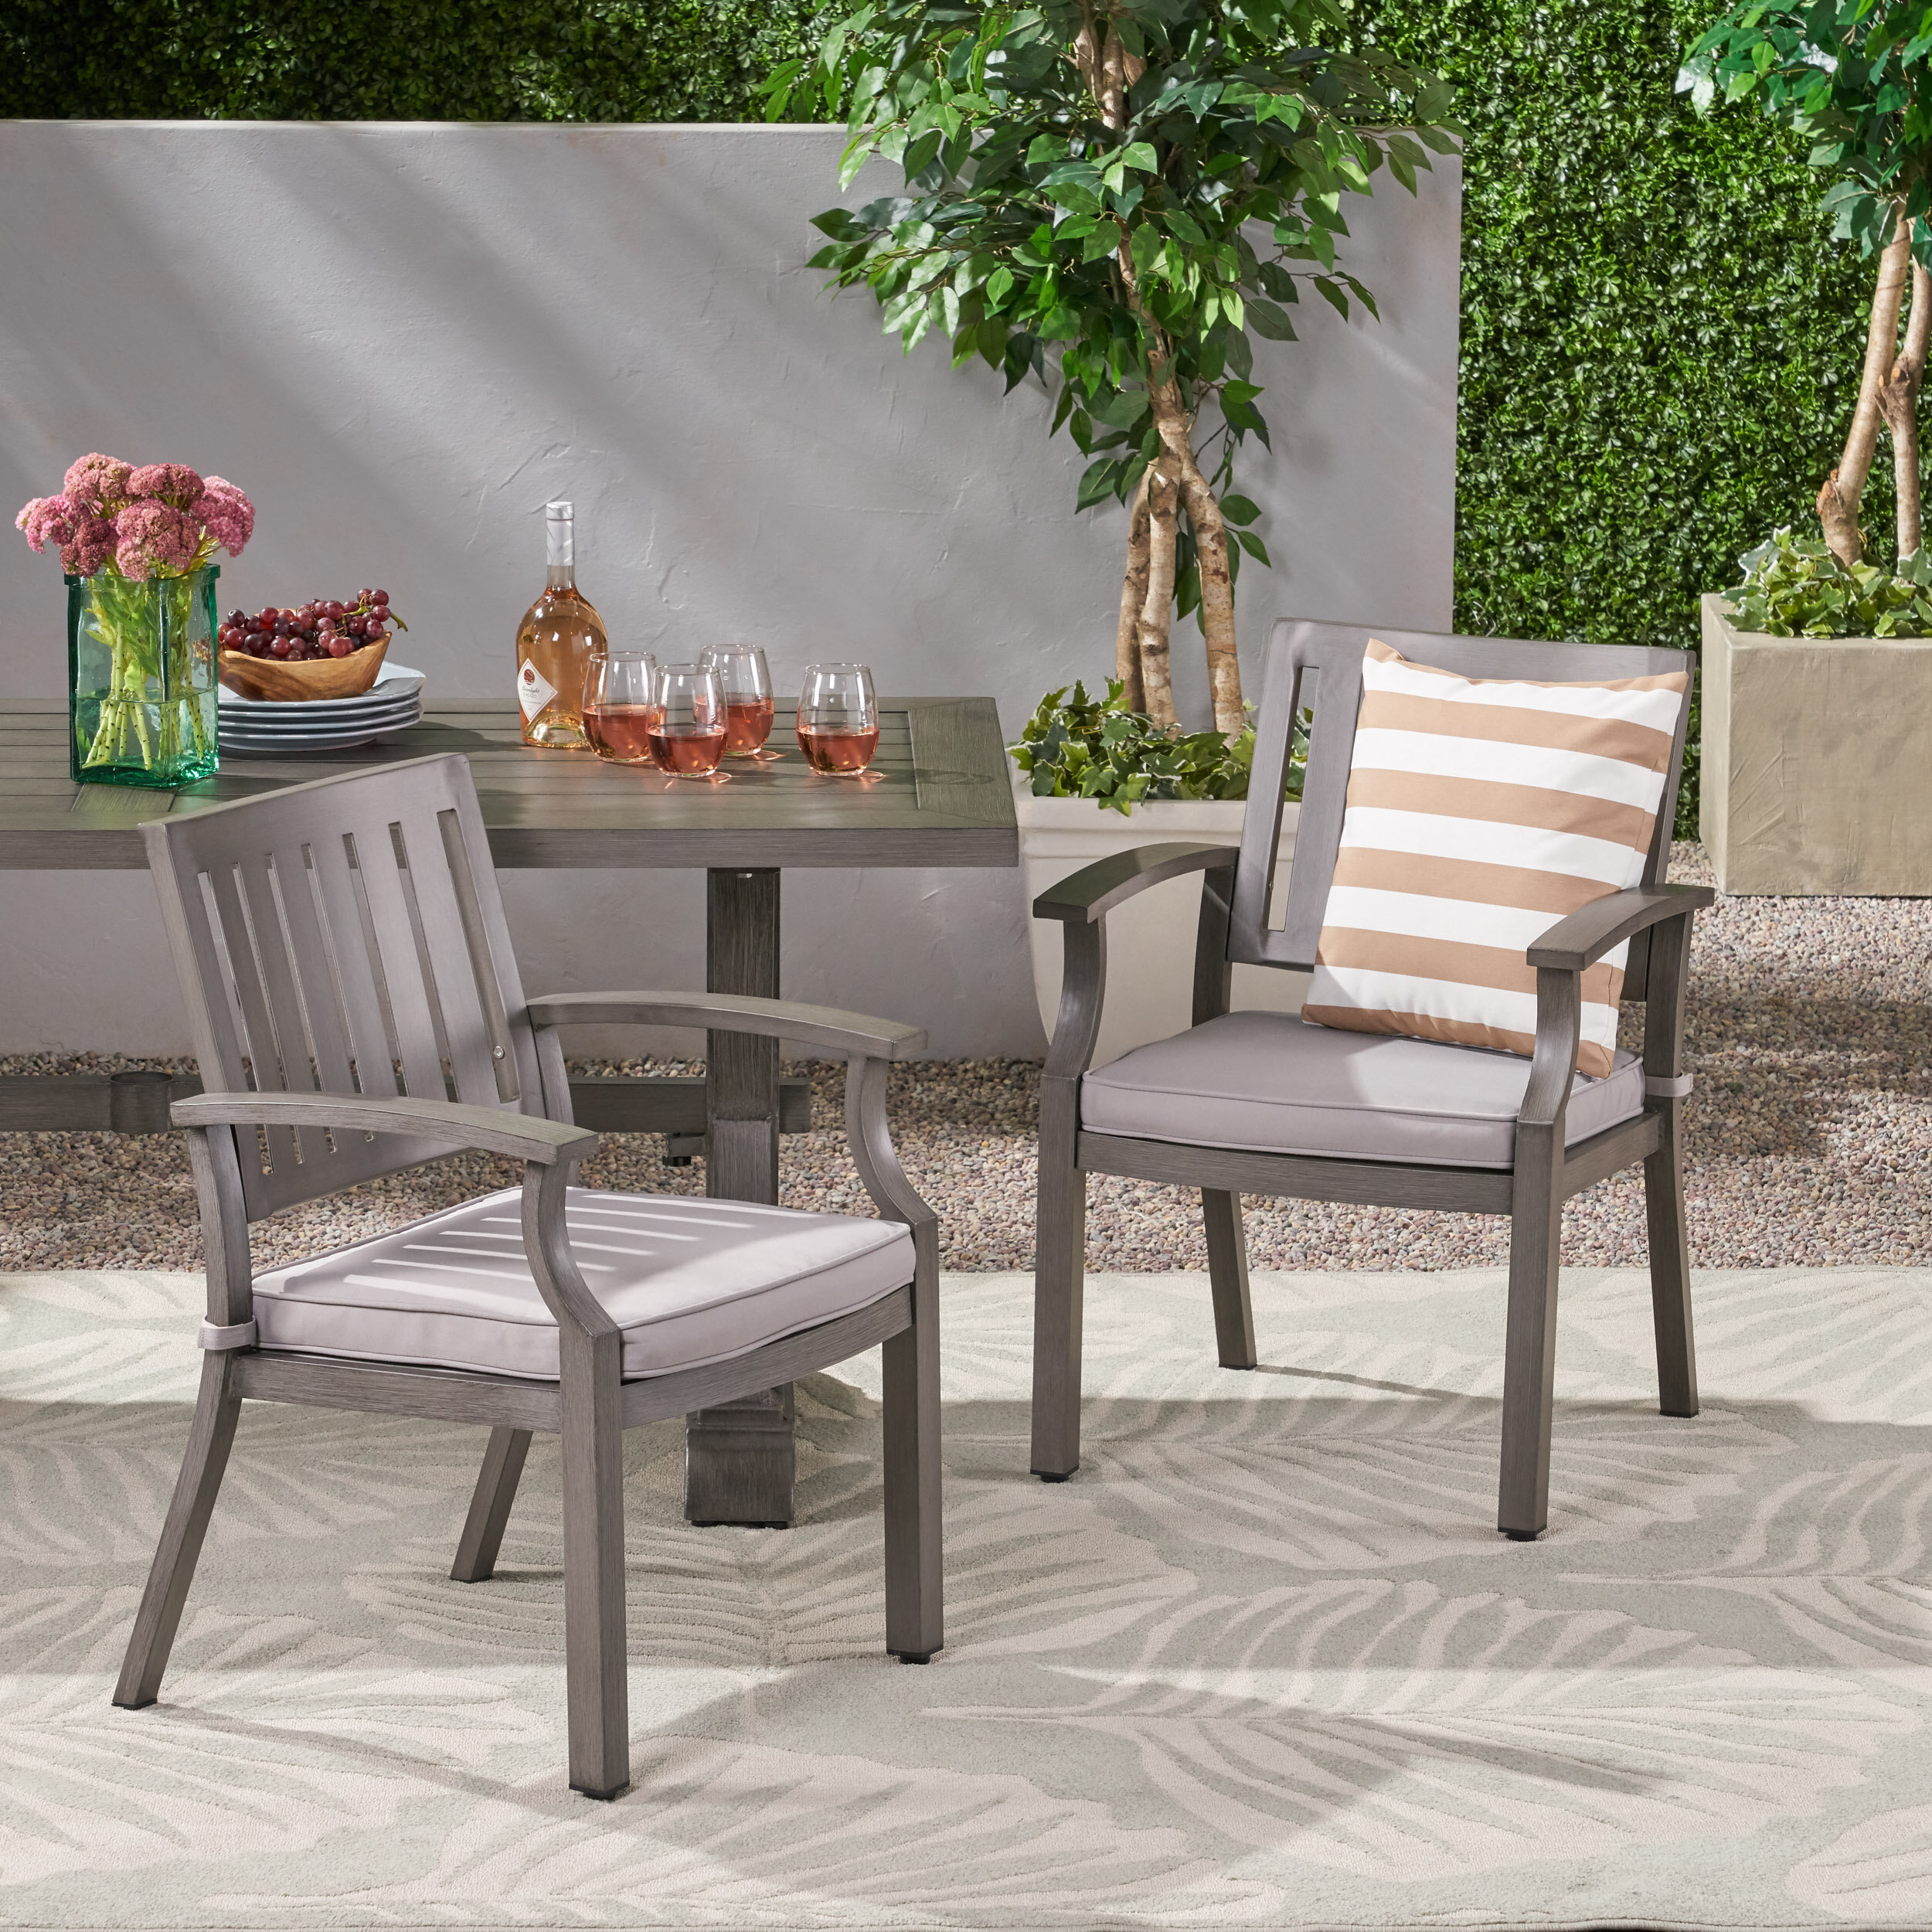 Modern Patio Dining Chair